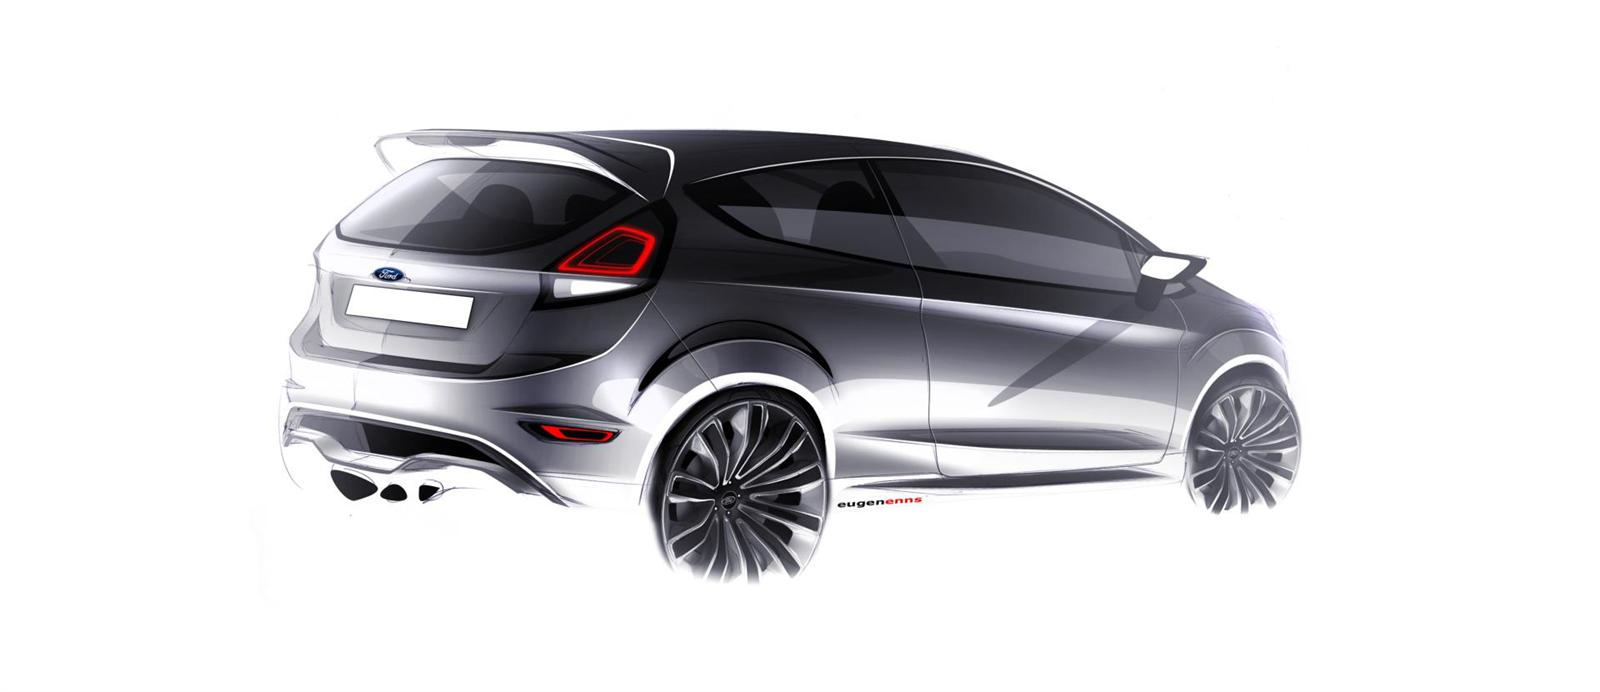 Ford Fiesta Hatchback >> 2012 Ford Fiesta ST Concept Image. Photo 26 of 27